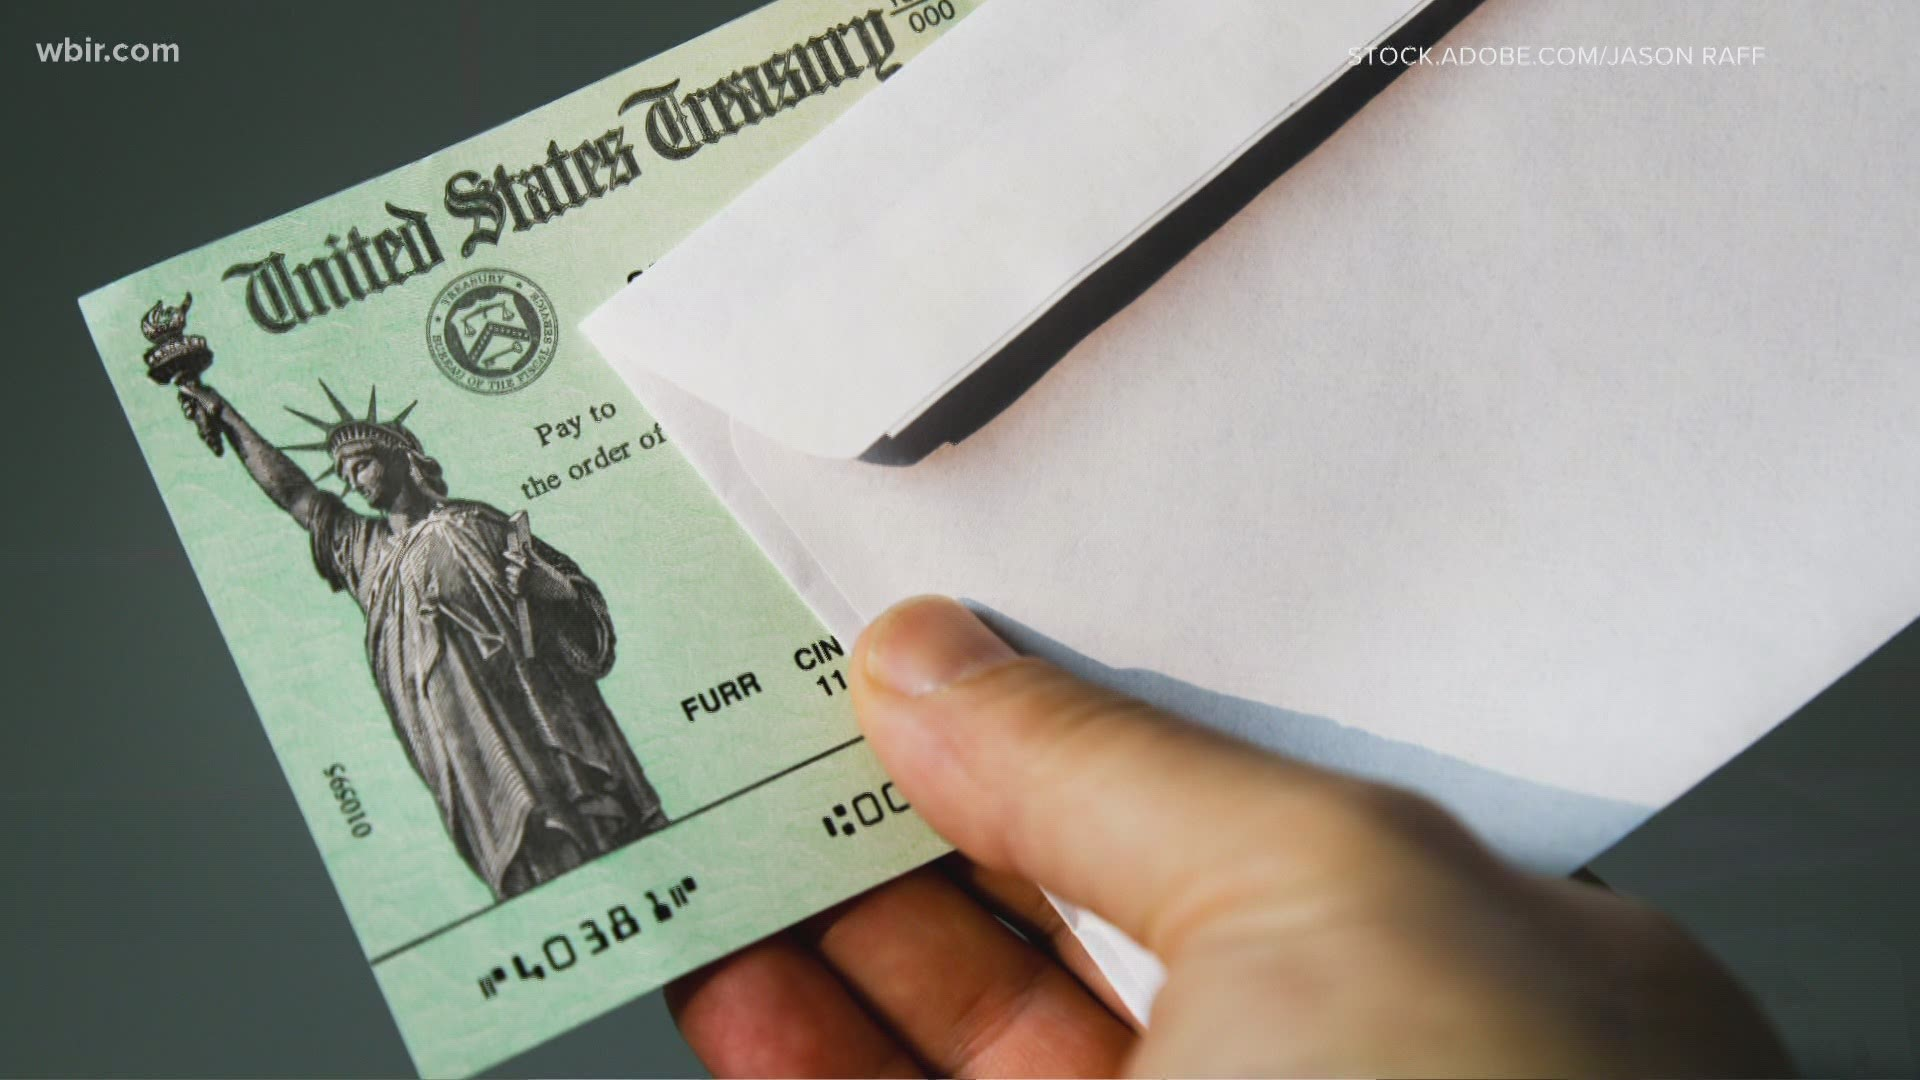 Third stimulus check update: How to track $1,400 payment ...